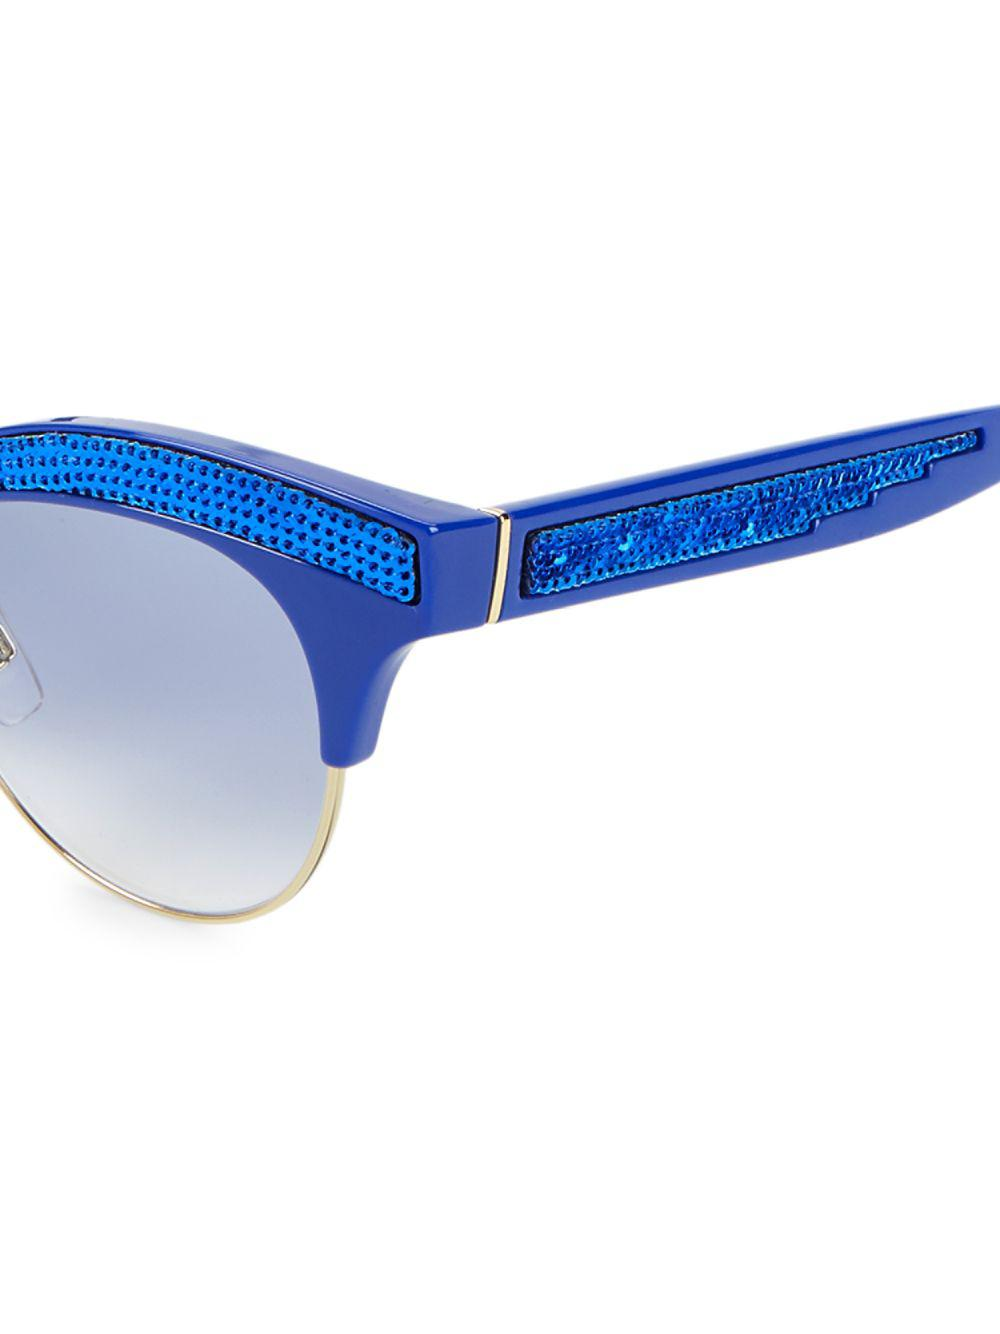 fdaf68fe0f41 Dolce   Gabbana - Blue 50mm Sequin Trim Cateye Sunglasses - Lyst. View  fullscreen